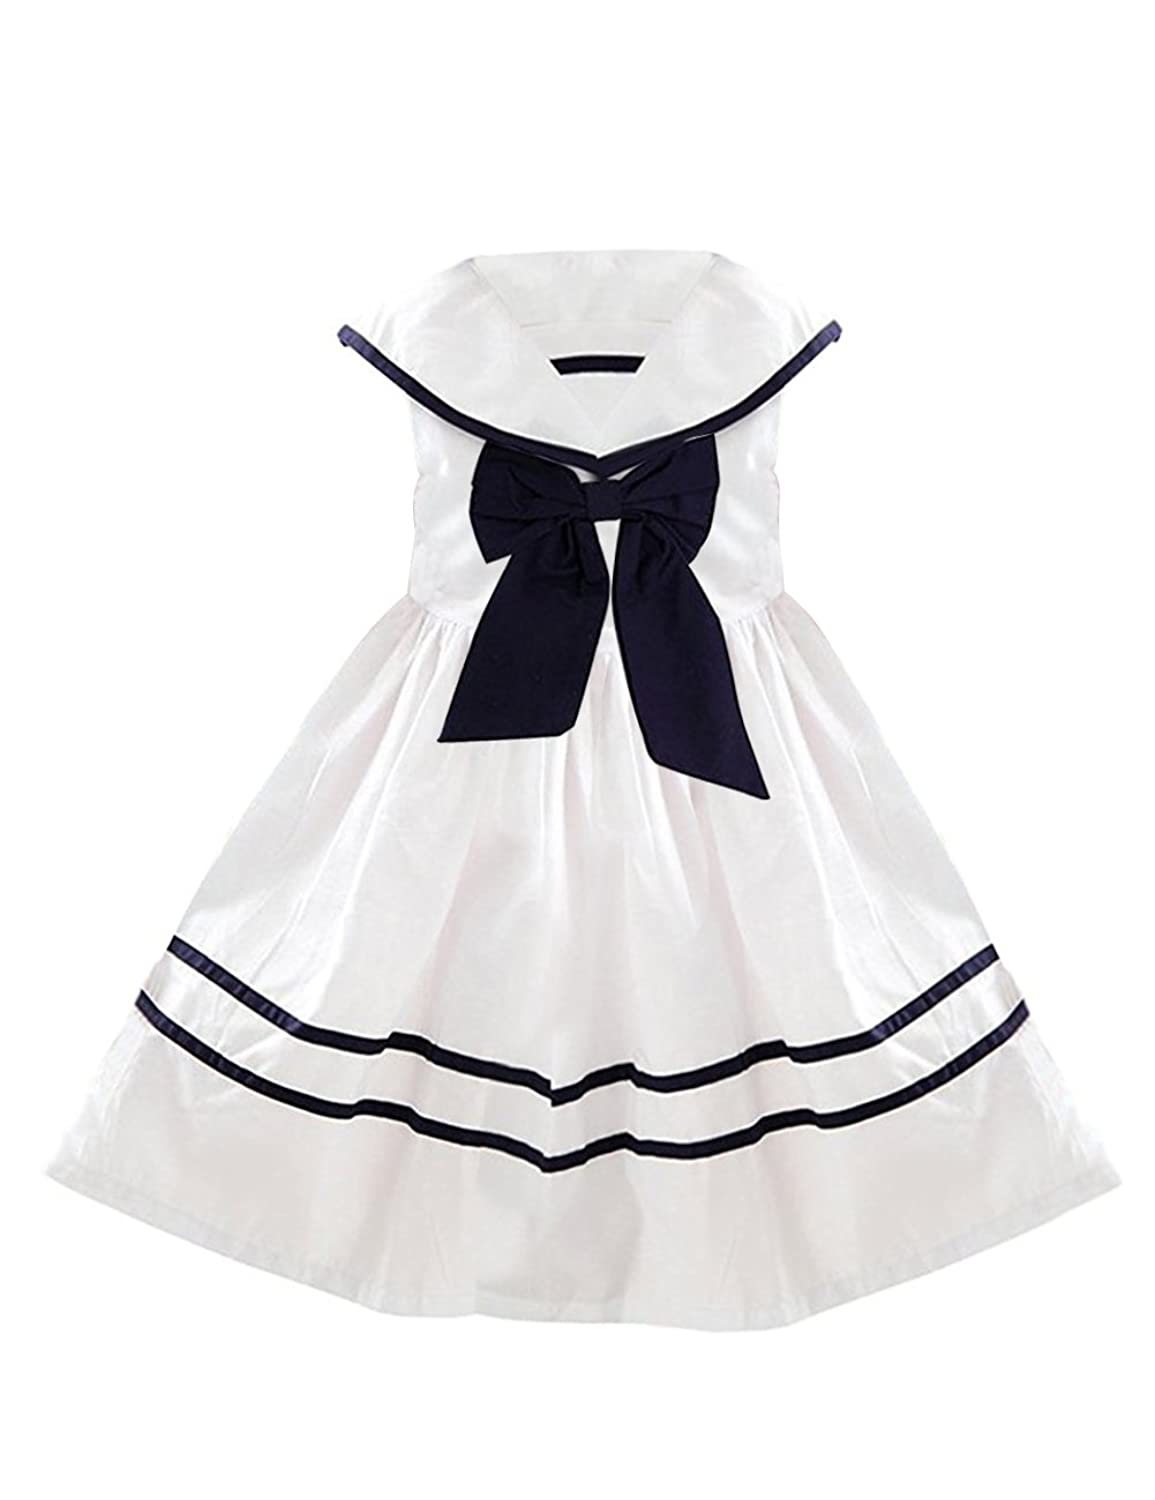 1930s Childrens Fashion: Girls, Boys, Toddler, Baby Costumes YJ.GWL Girl Nautical Dress Collar Sailor Dress with Bow-Tie $17.99 AT vintagedancer.com